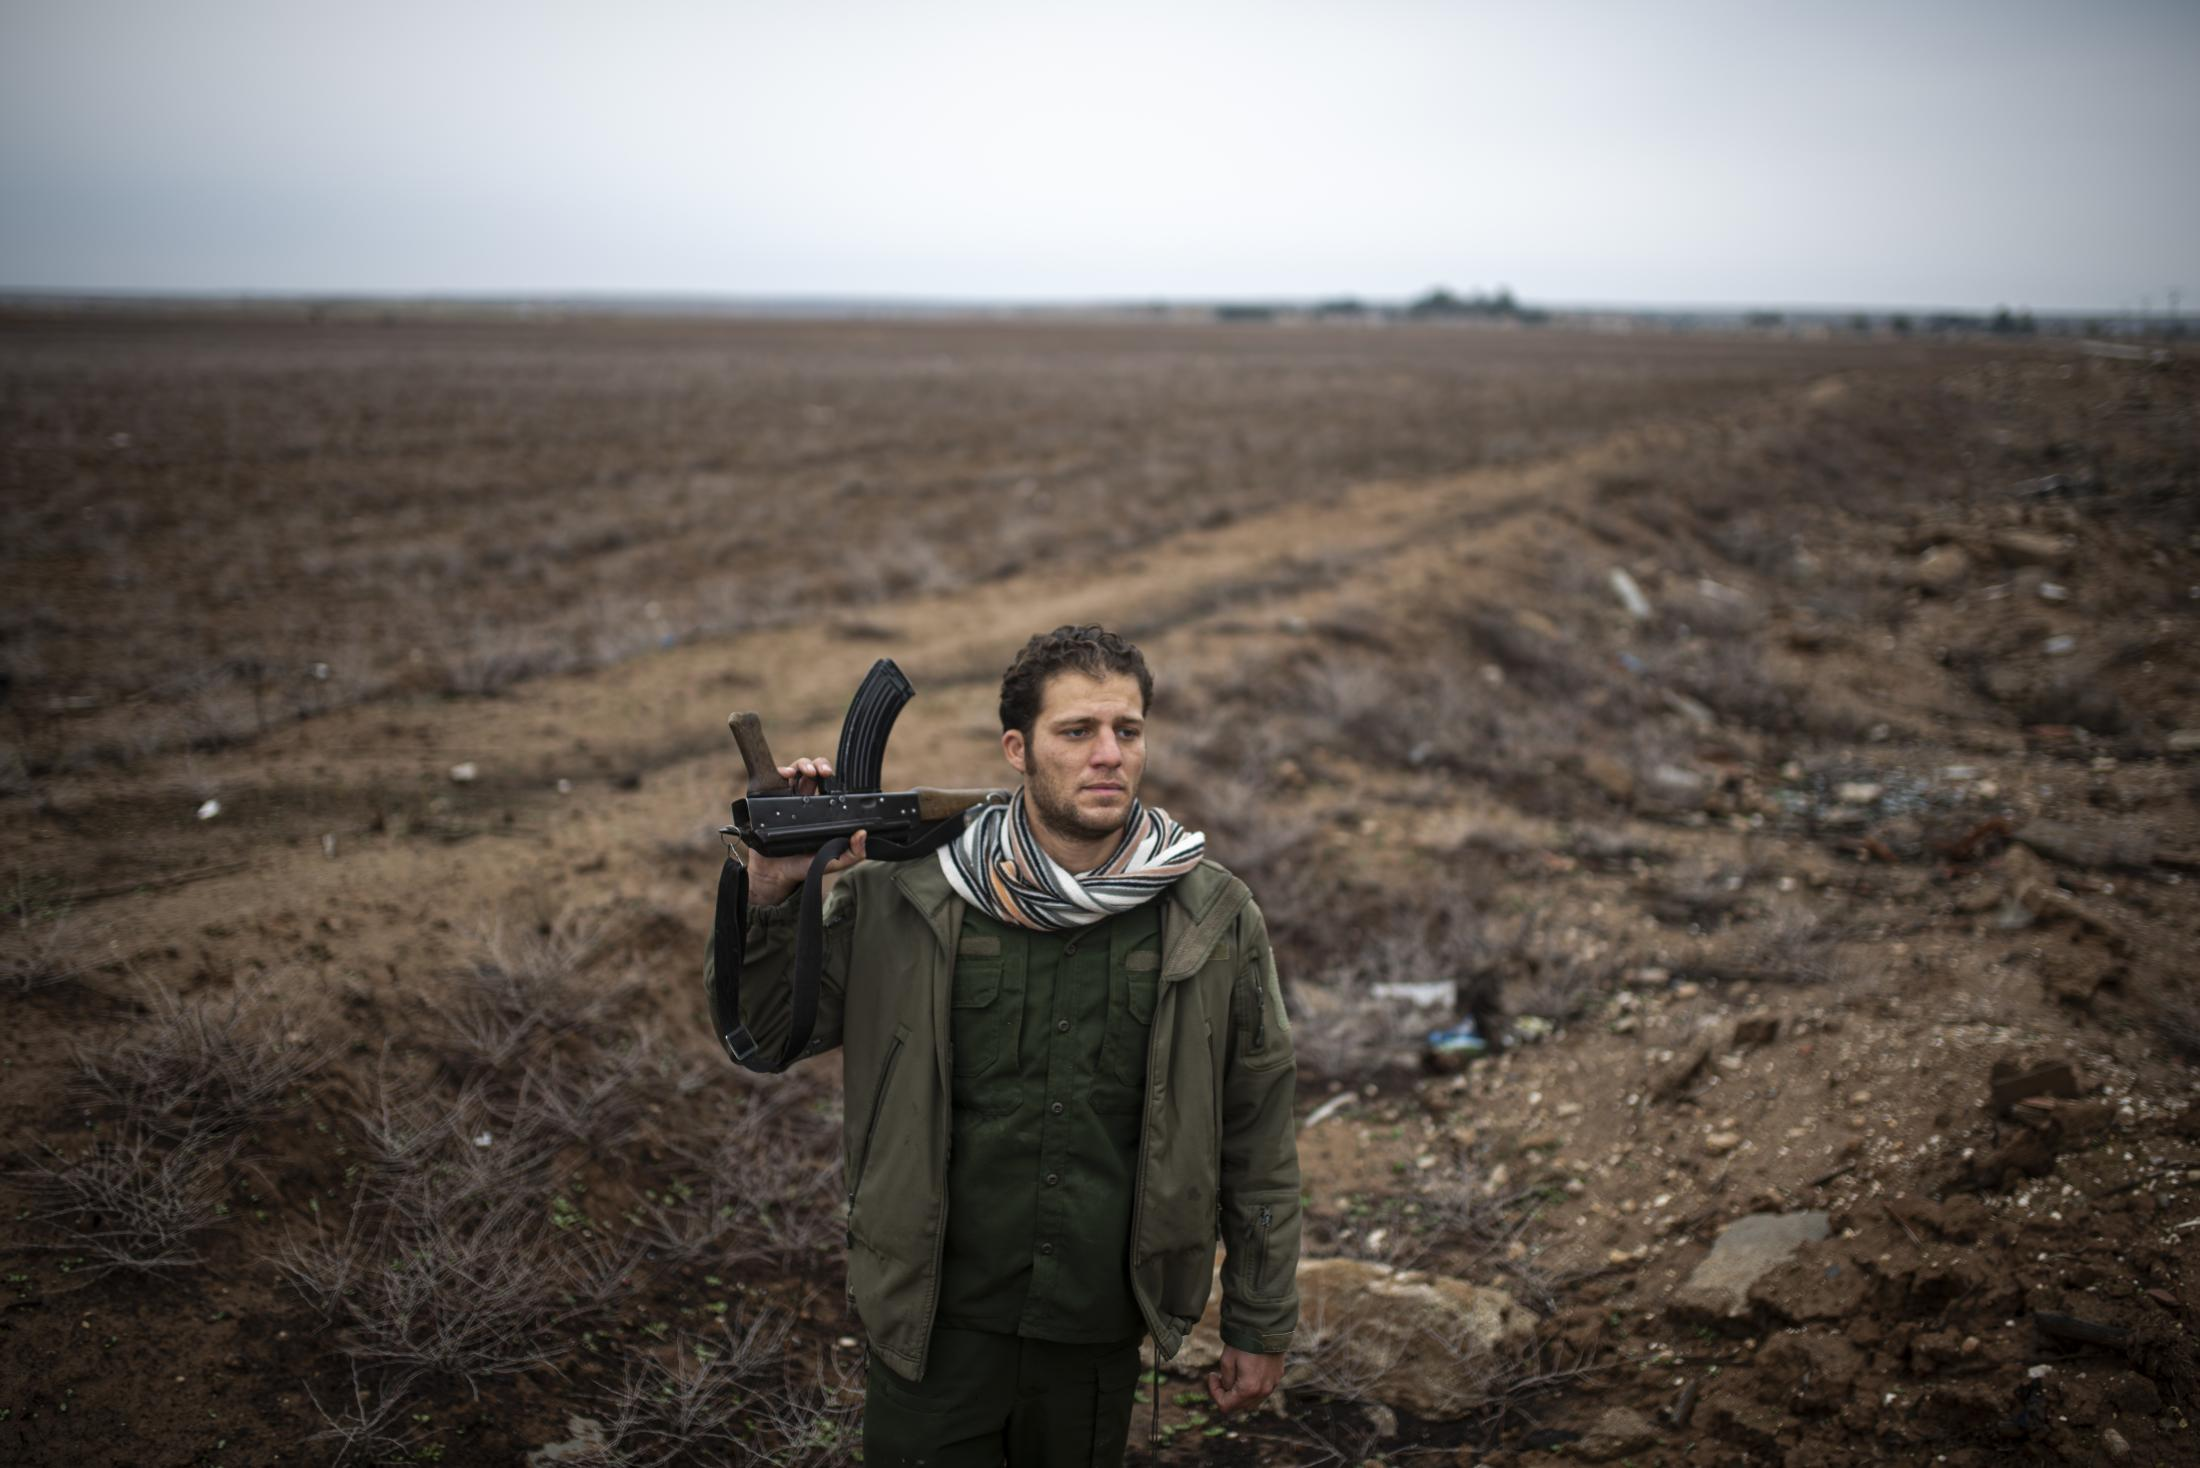 A portrait of a YPG soldier in a checkpoint of Tel Nasri, few kilometers far away from the frontline against yihadist and Turkish Army. After the withdrawal of US troops from northern Syria in October 2019, Turkey launched an offensive against the predominantly Kurdish areas in the northeast of the country along Islamist forces. Calls for war crimes investigations into the conduct of Ankara-backed militias are mounting ever since. (Andoni Lubaki / Euskal Fondoa)